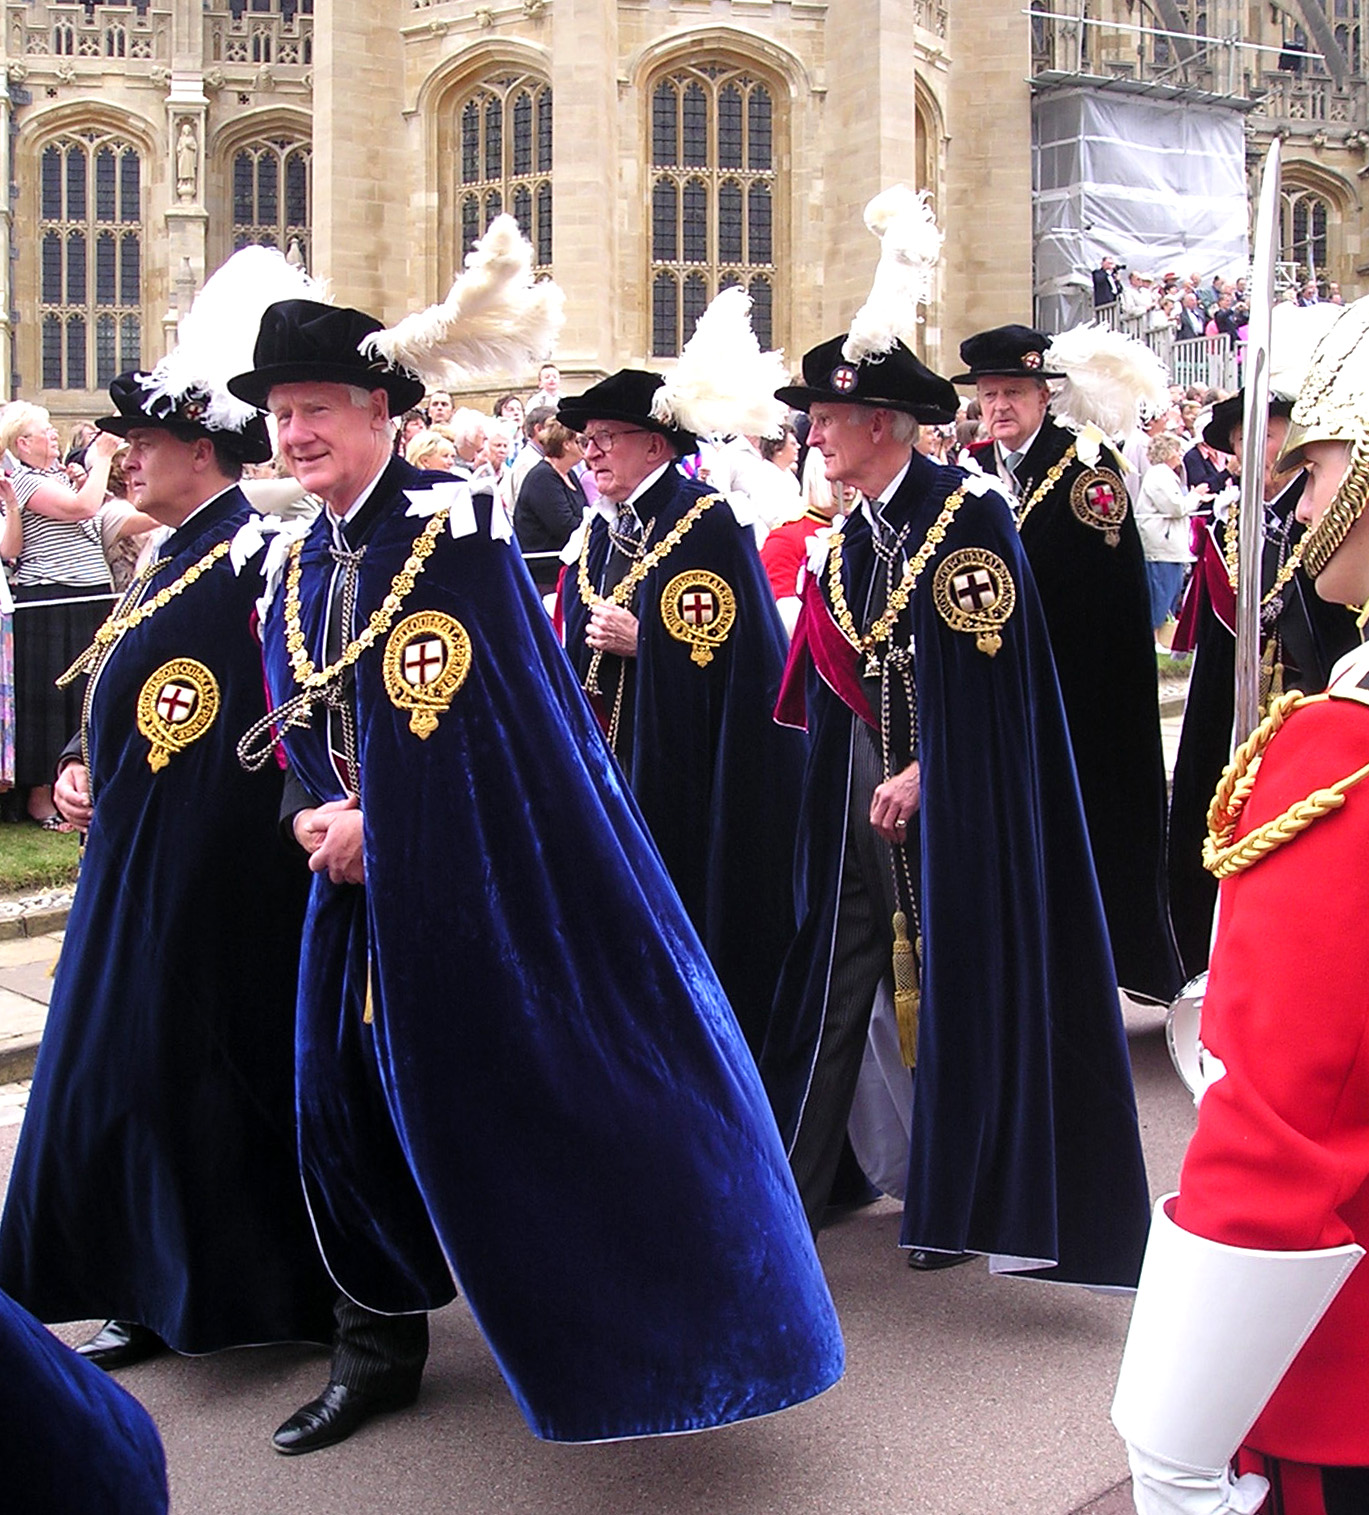 File:Knights Companion of the Garter.JPG - Wikimedia Commons